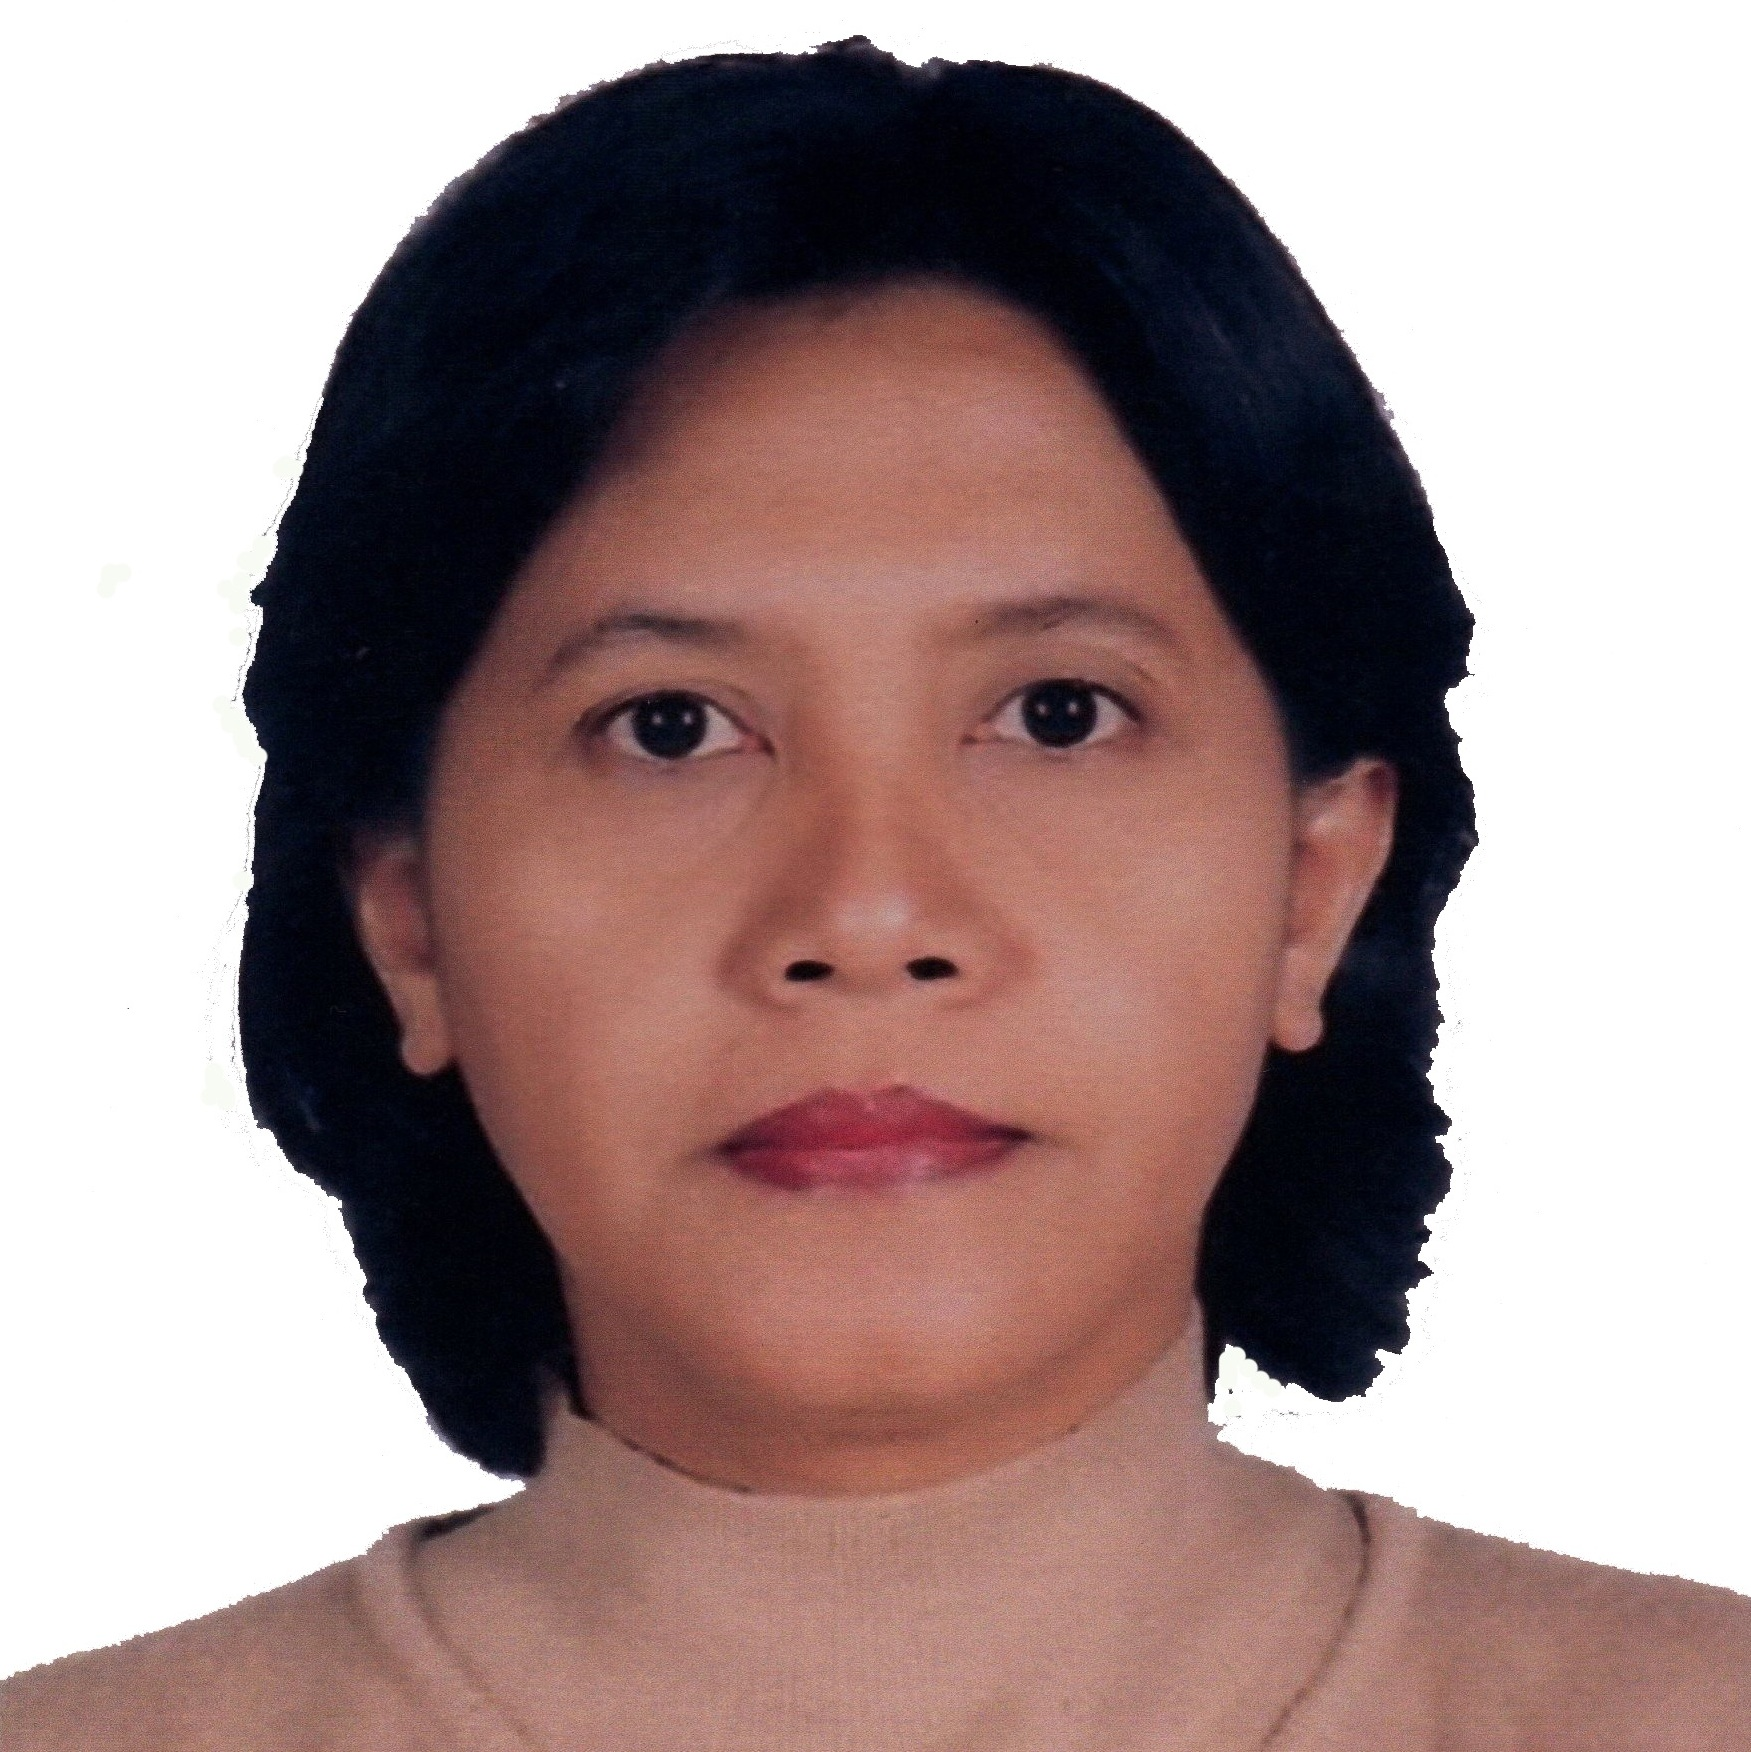 drg. Sri Kuswandari, MS., Sp.KGA., Ph.D.